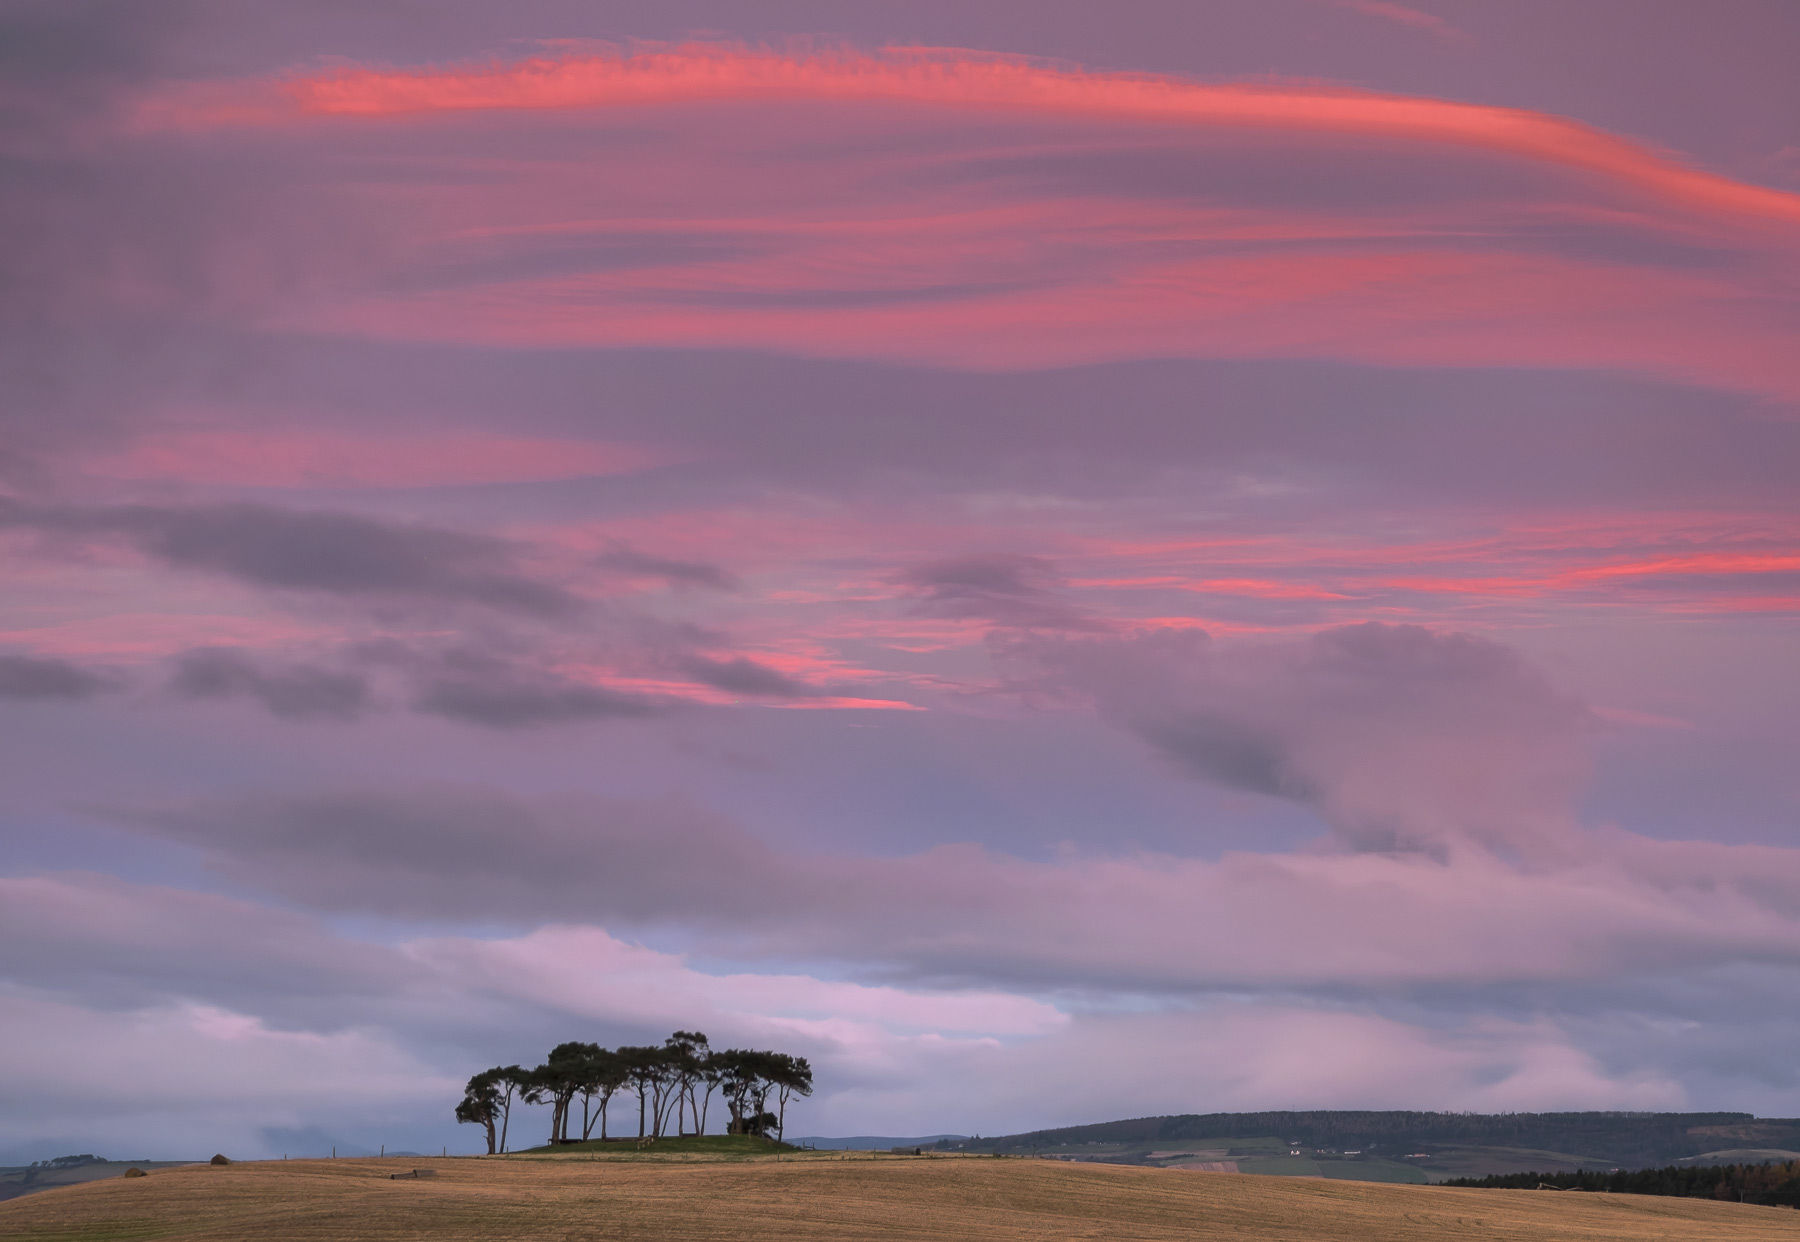 I had planned to capture a moonset through a pink sky on a specific time of year where a full moon would set behind the scots...